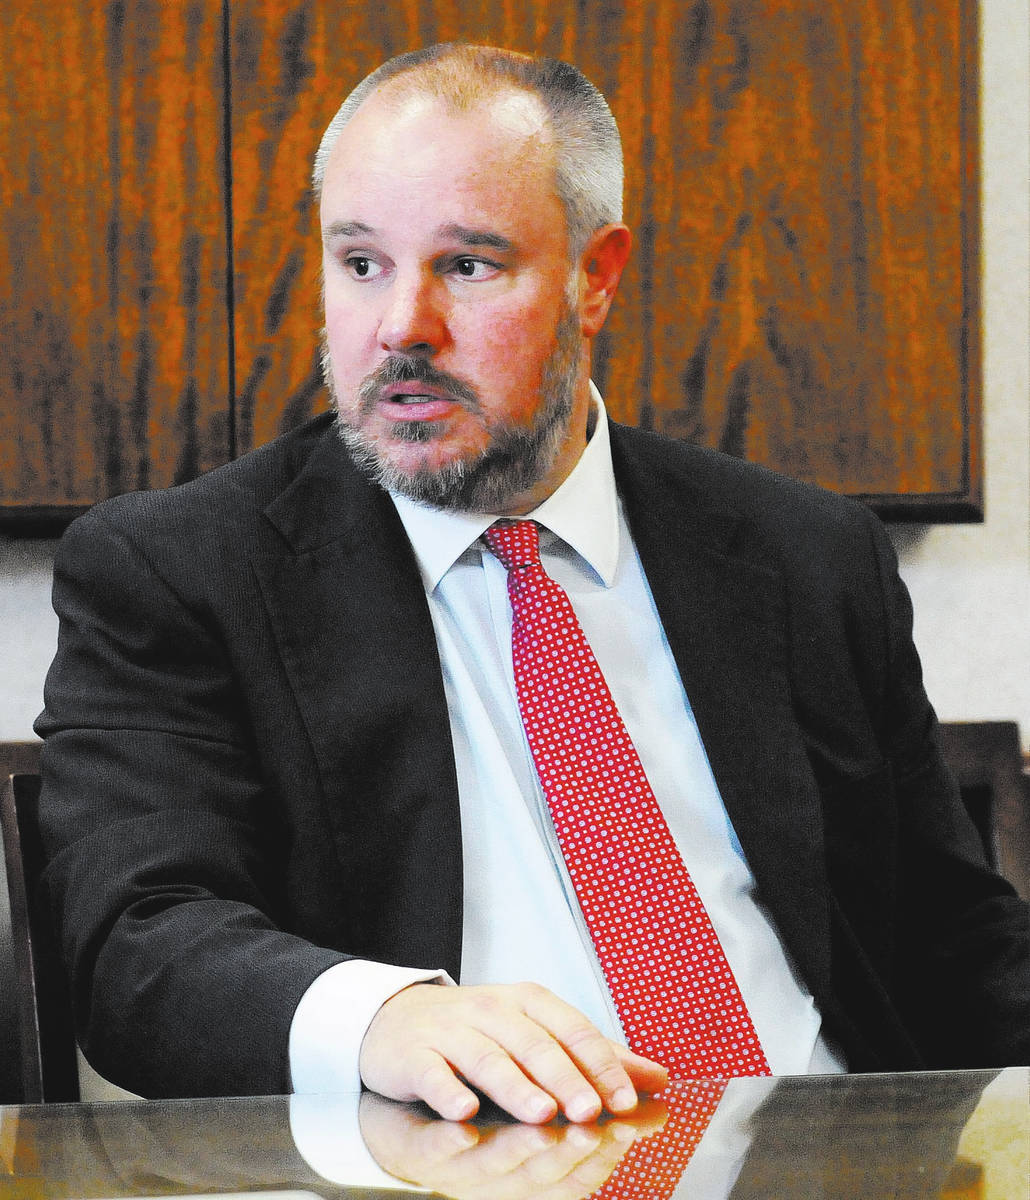 Trevor Hayes, candidate for District 2, Board of Regents, responds to questions at a Review-Jou ...